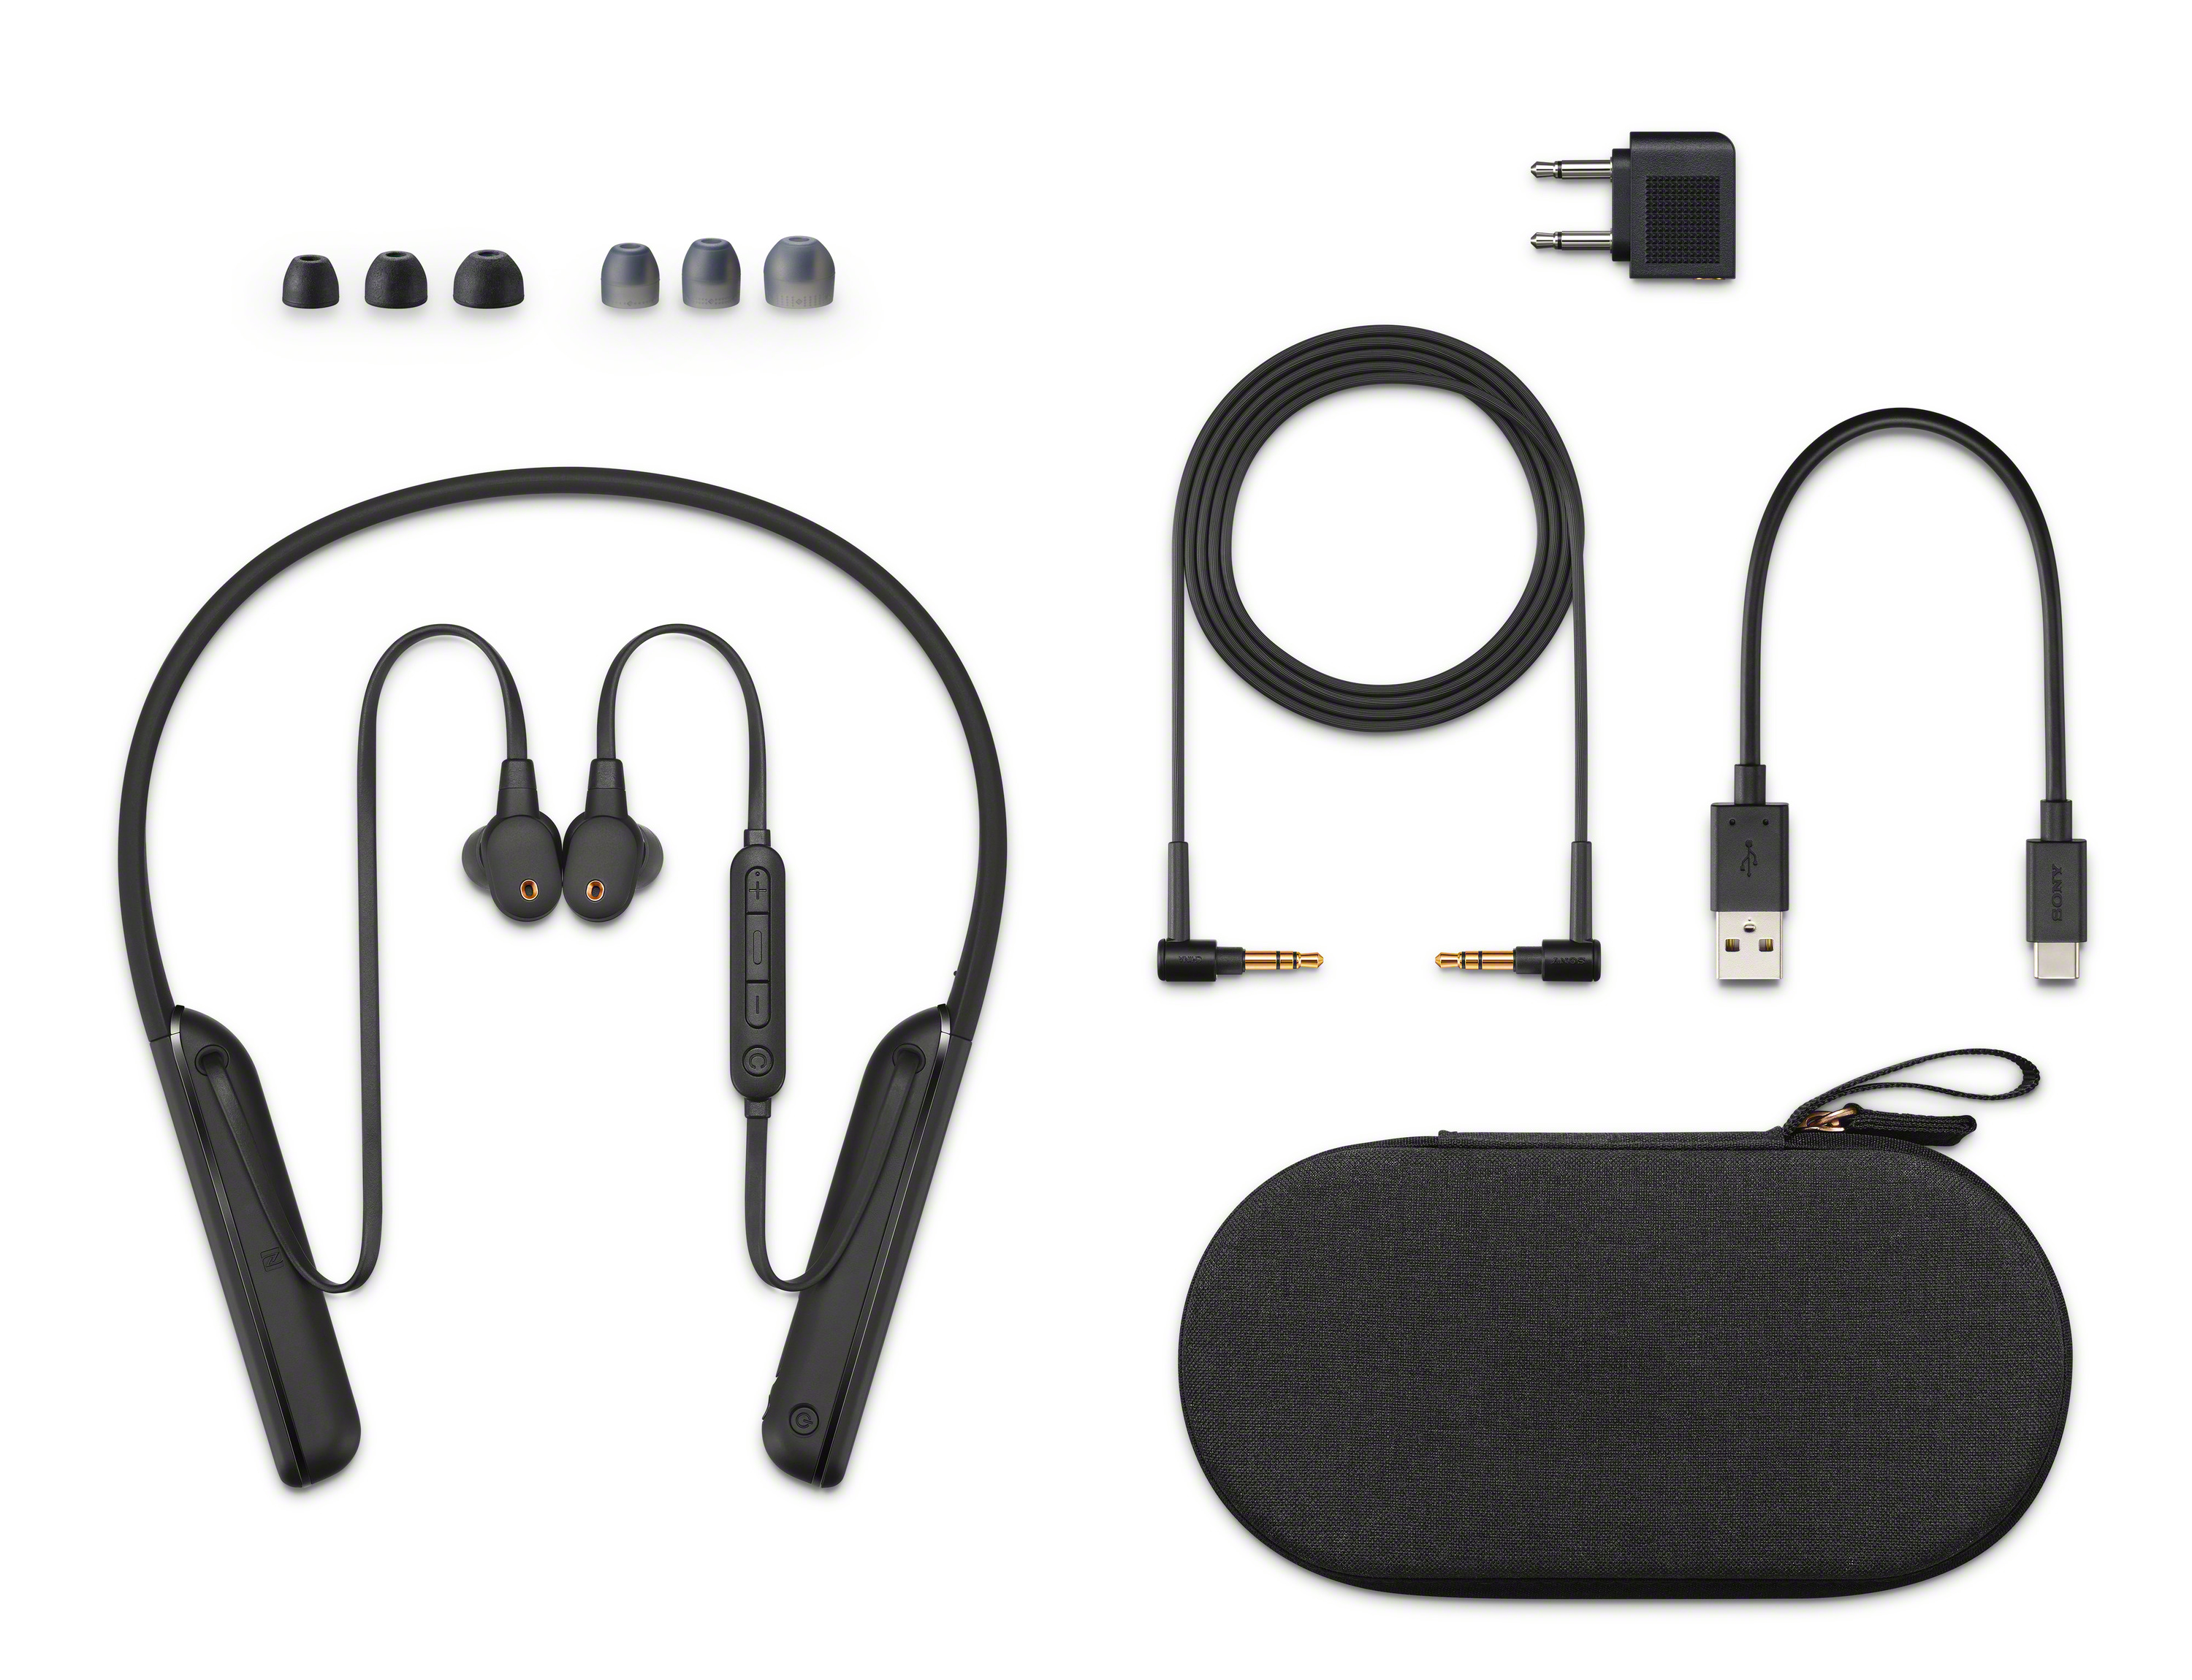 Cancel out the commotion around you thanks to  Sony's new WI-1000XM2 neckband headphones  with Industry-leading Noise Cancellation